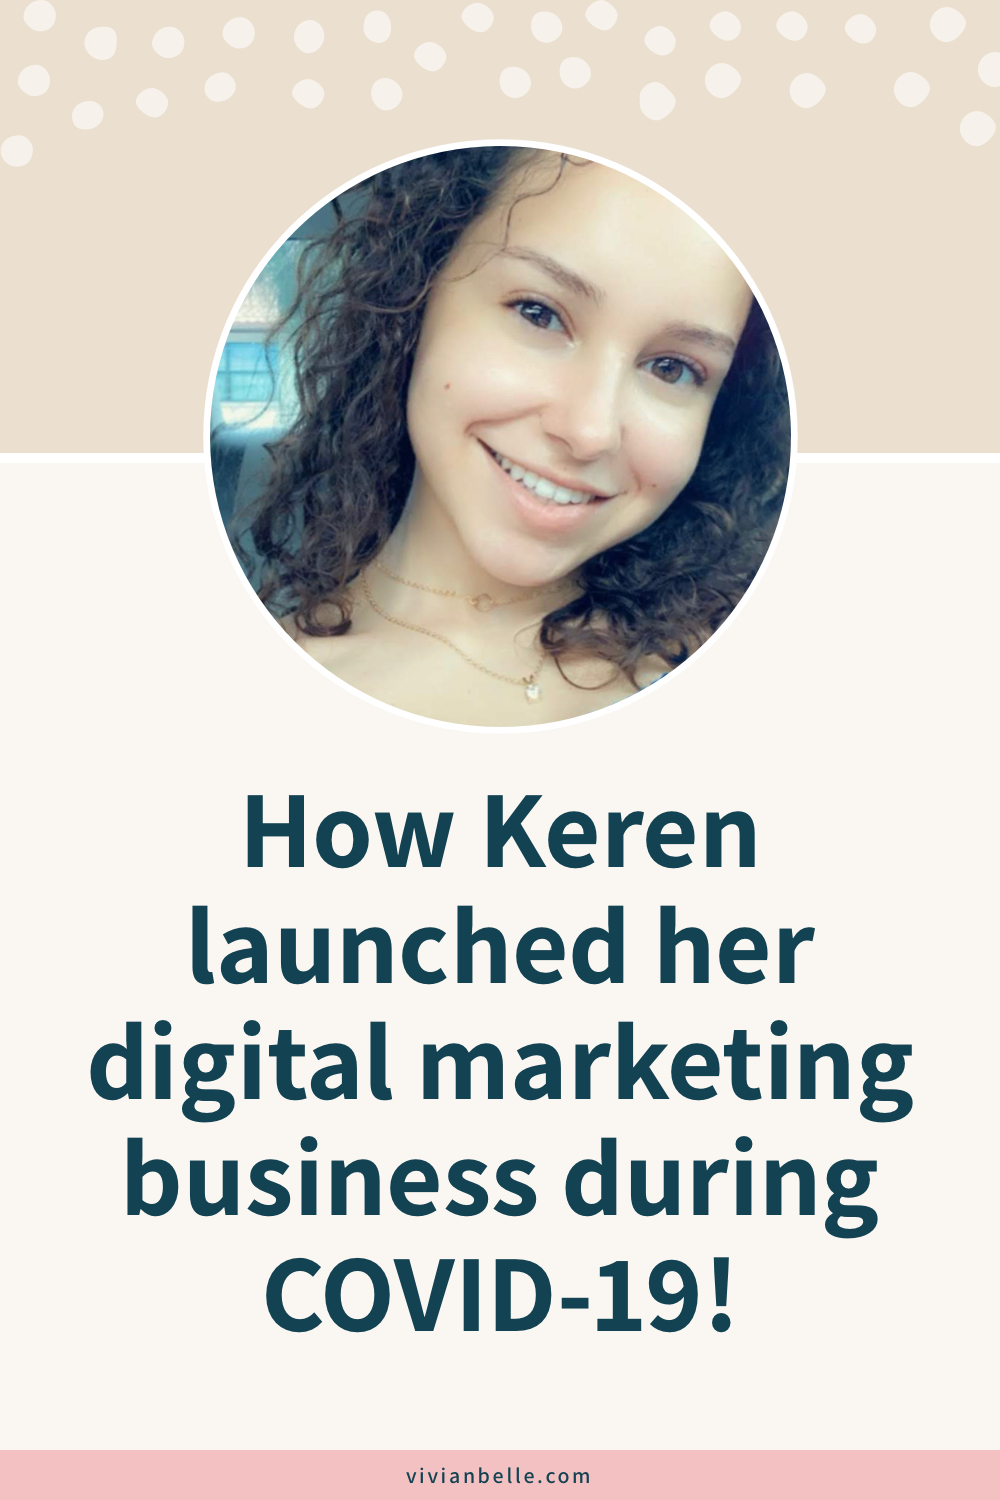 How Keren launched her digital marketing business during COVID-19